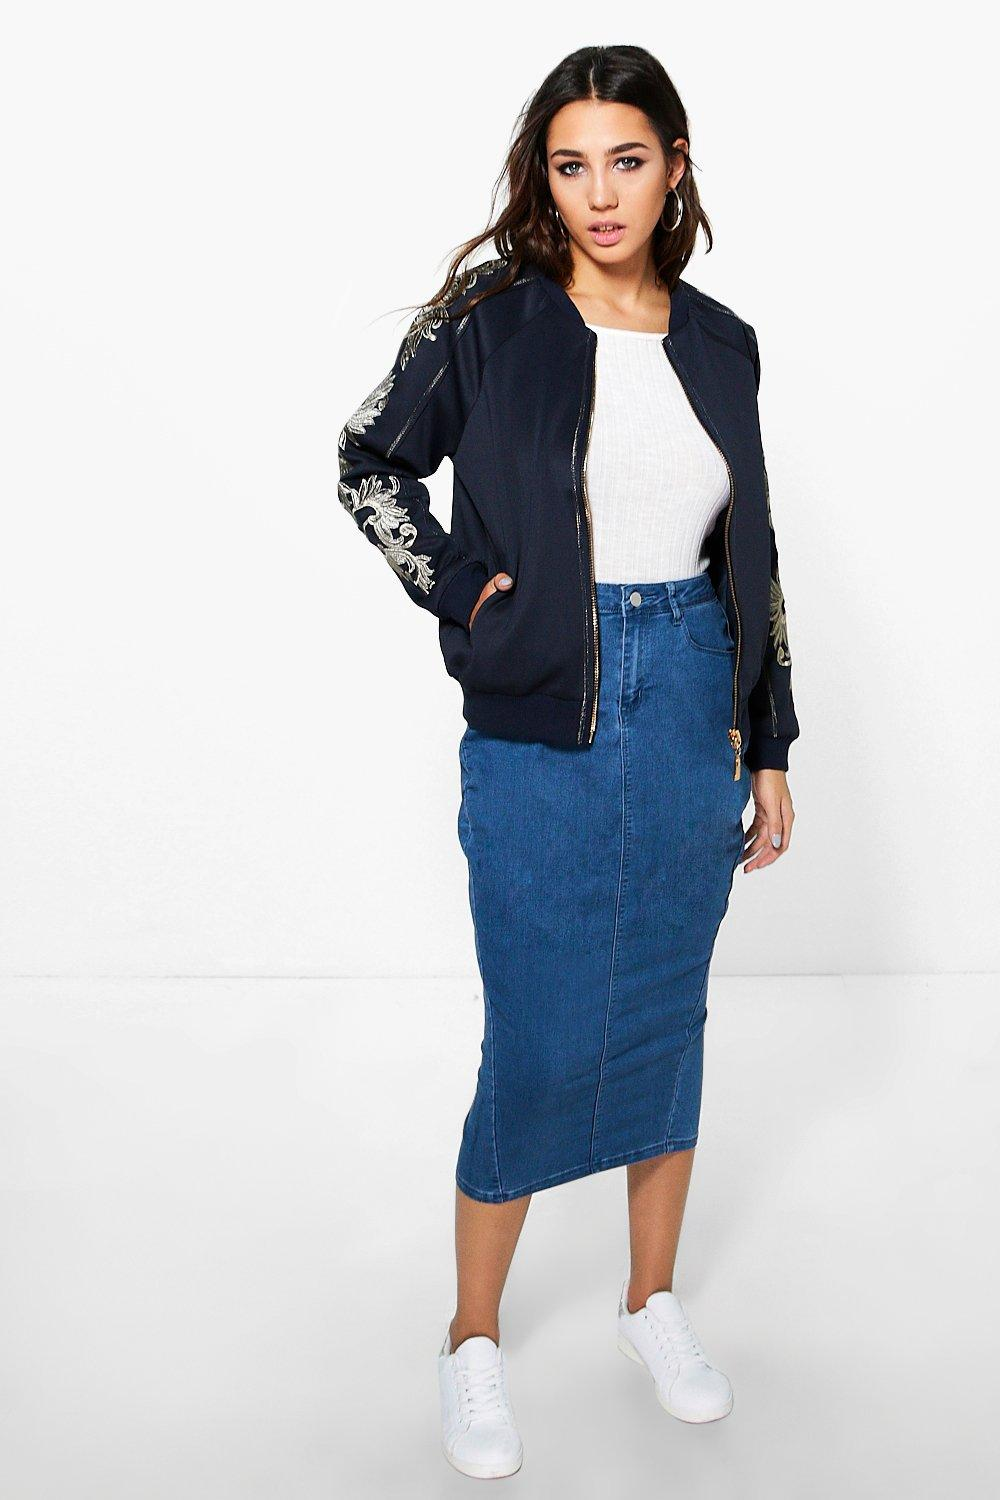 authorized site half off pre order Jupe longue en jean | Boohoo